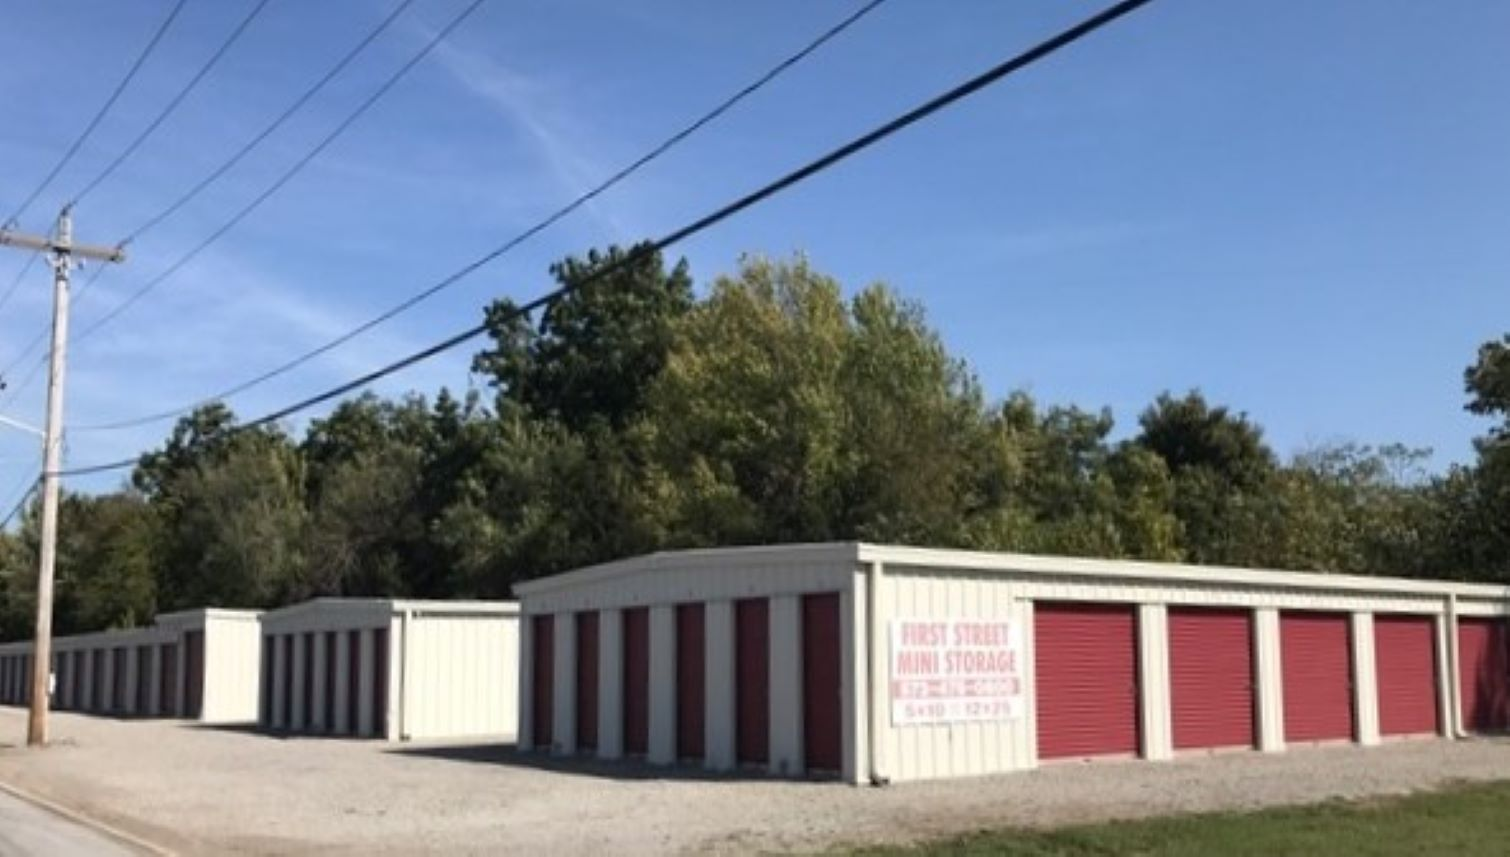 Storage in Sikeston, MO